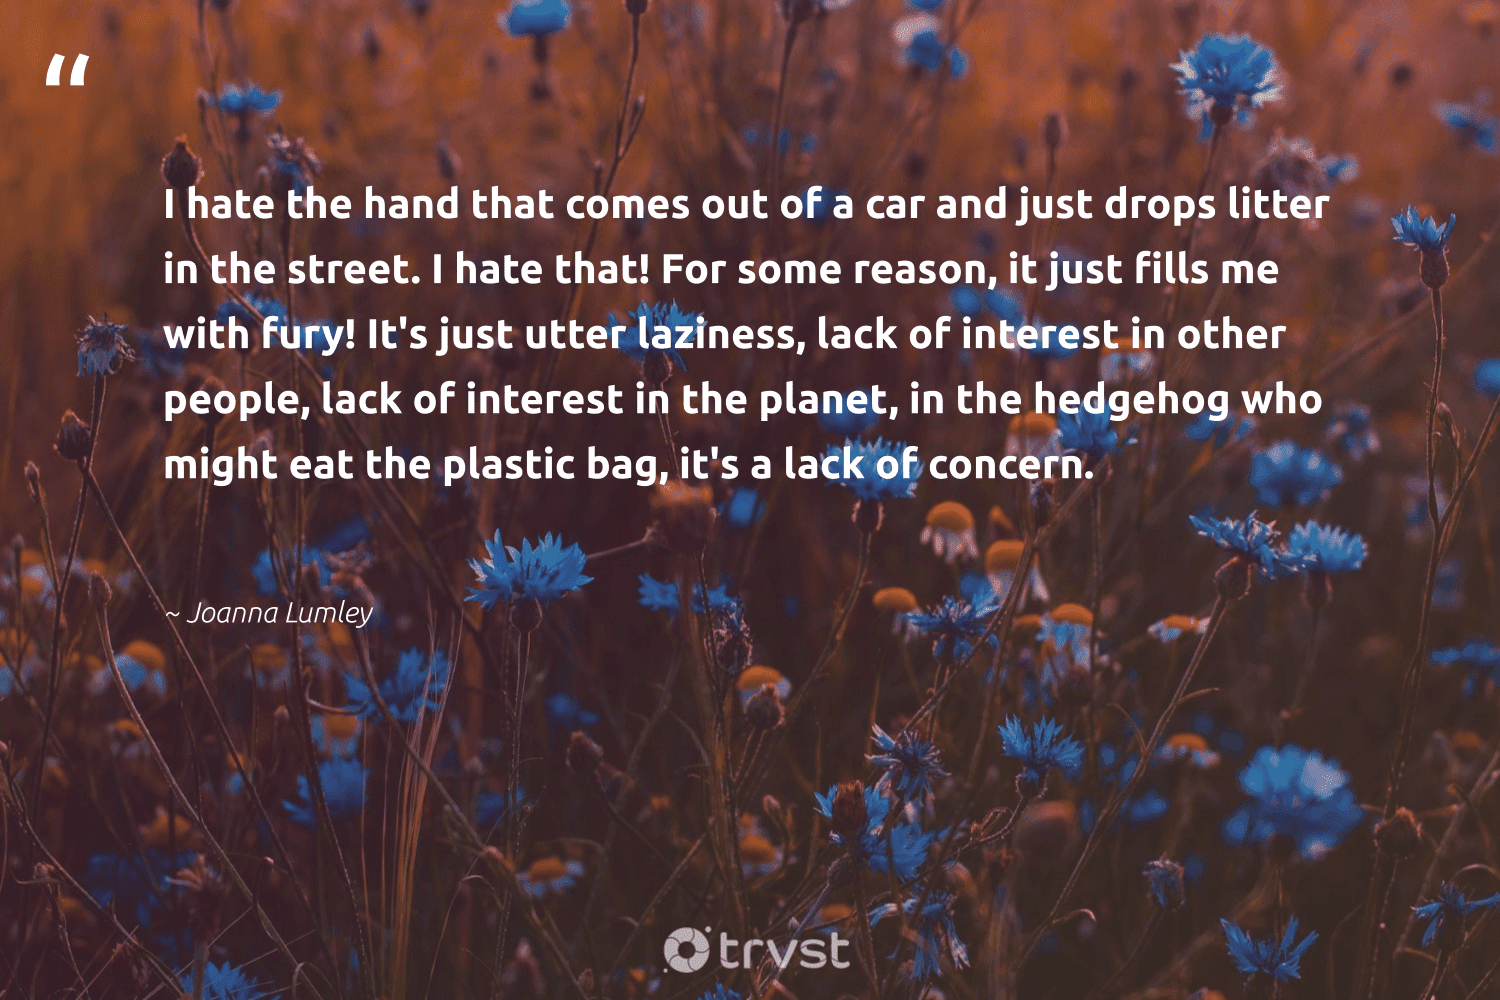 """""""I hate the hand that comes out of a car and just drops litter in the street. I hate that! For some reason, it just fills me with fury! It's just utter laziness, lack of interest in other people, lack of interest in the planet, in the hedgehog who might eat the plastic bag, it's a lack of concern.""""  - Joanna Lumley #trvst #quotes #plasticwaste #plastic #planet #plasticfree #betterfortheplanet #environmentallyfriendly #dotherightthing #microplastics #waste #saveourplanet"""